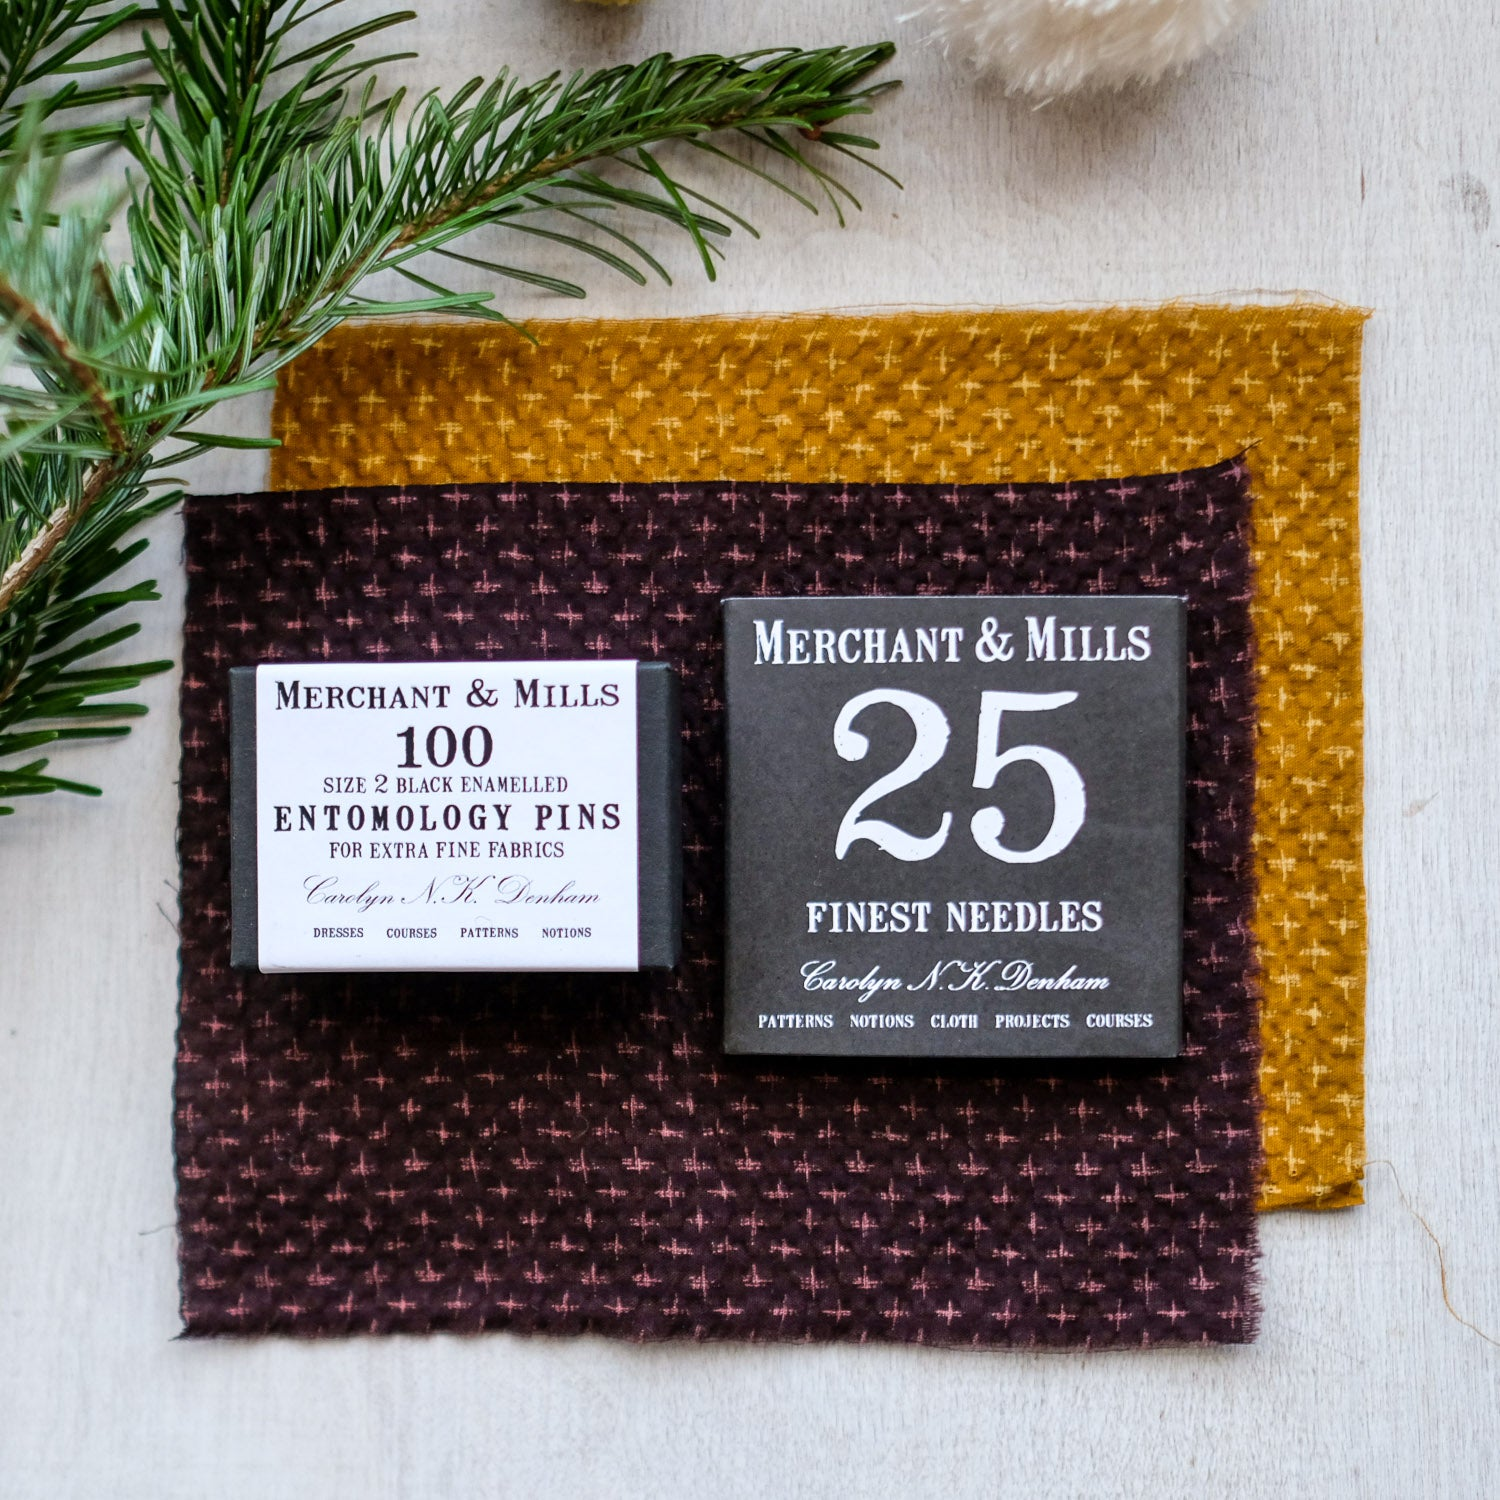 Merchant & Mills Sew Love Kit